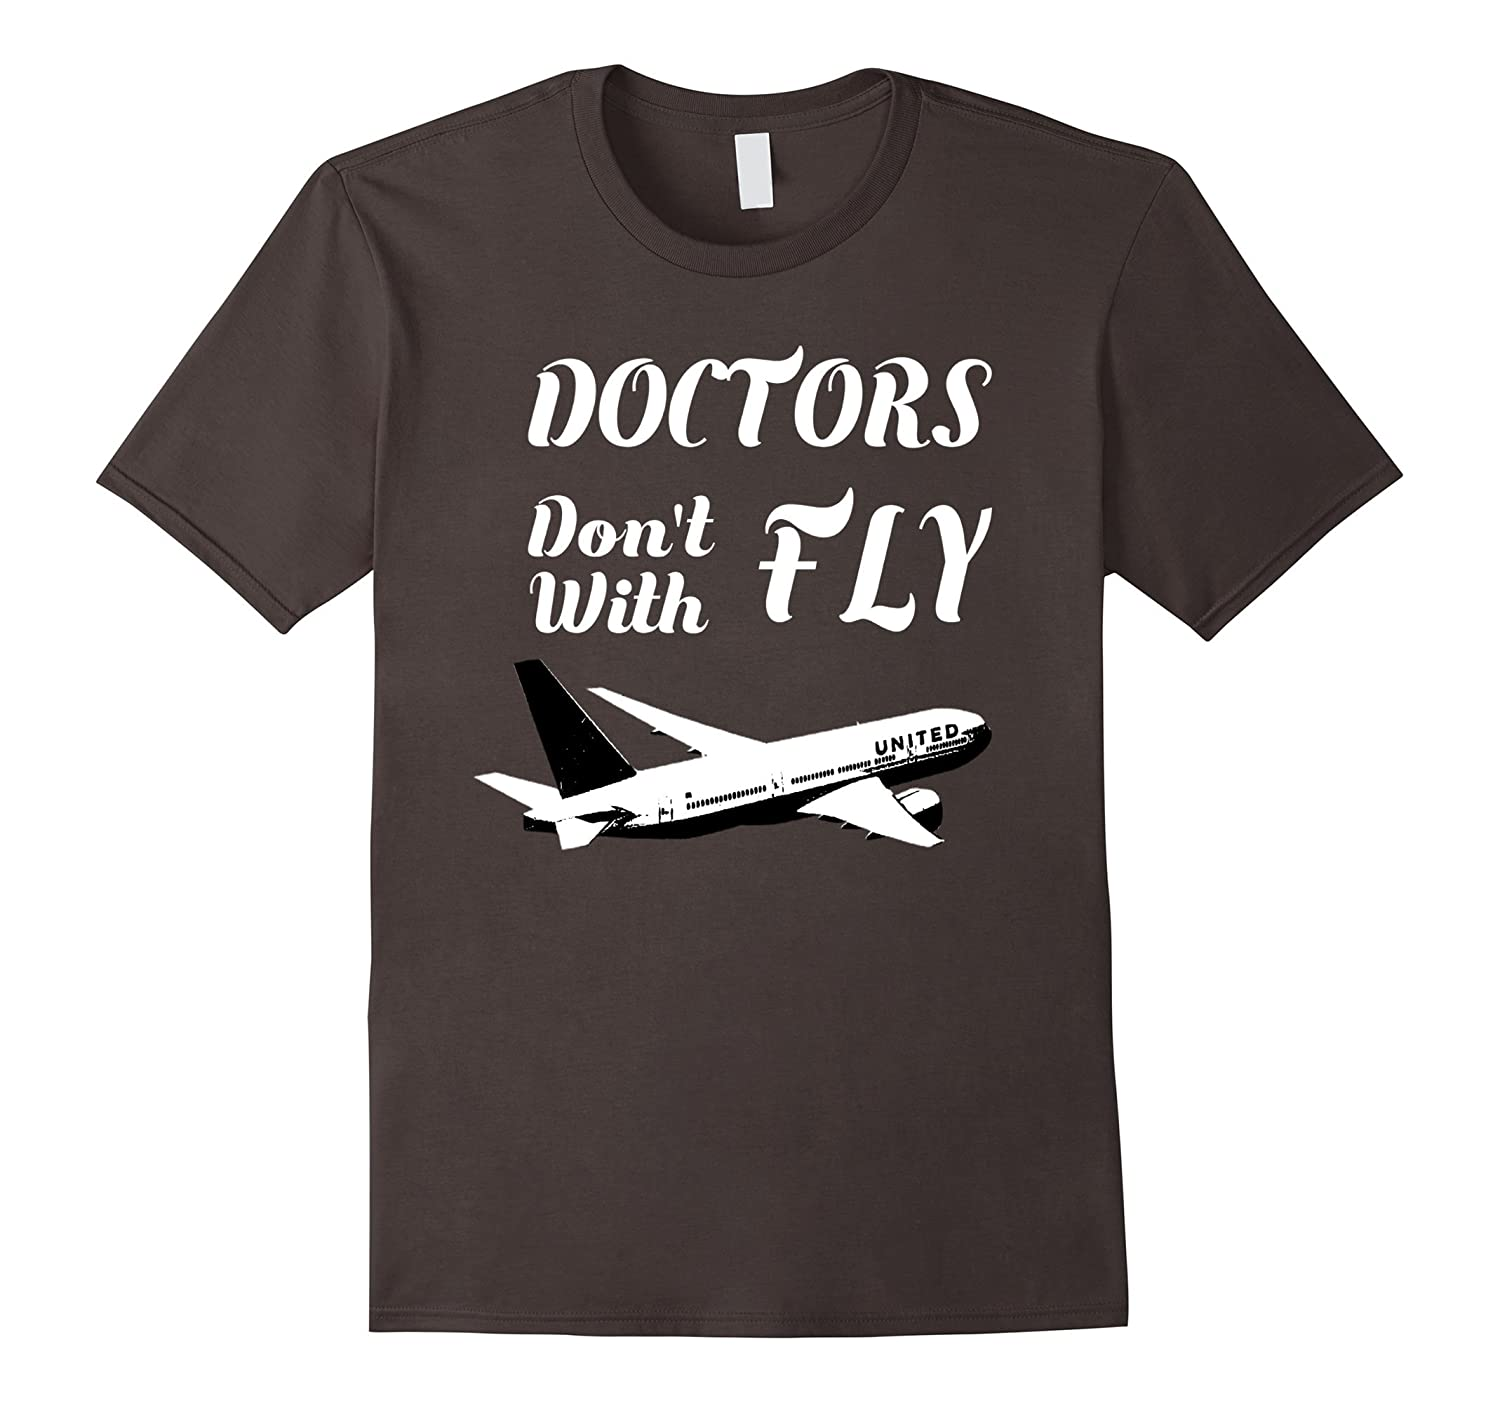 Doctors Dont With Fly - UNITED FLIGHT 411 T-shirt-TD